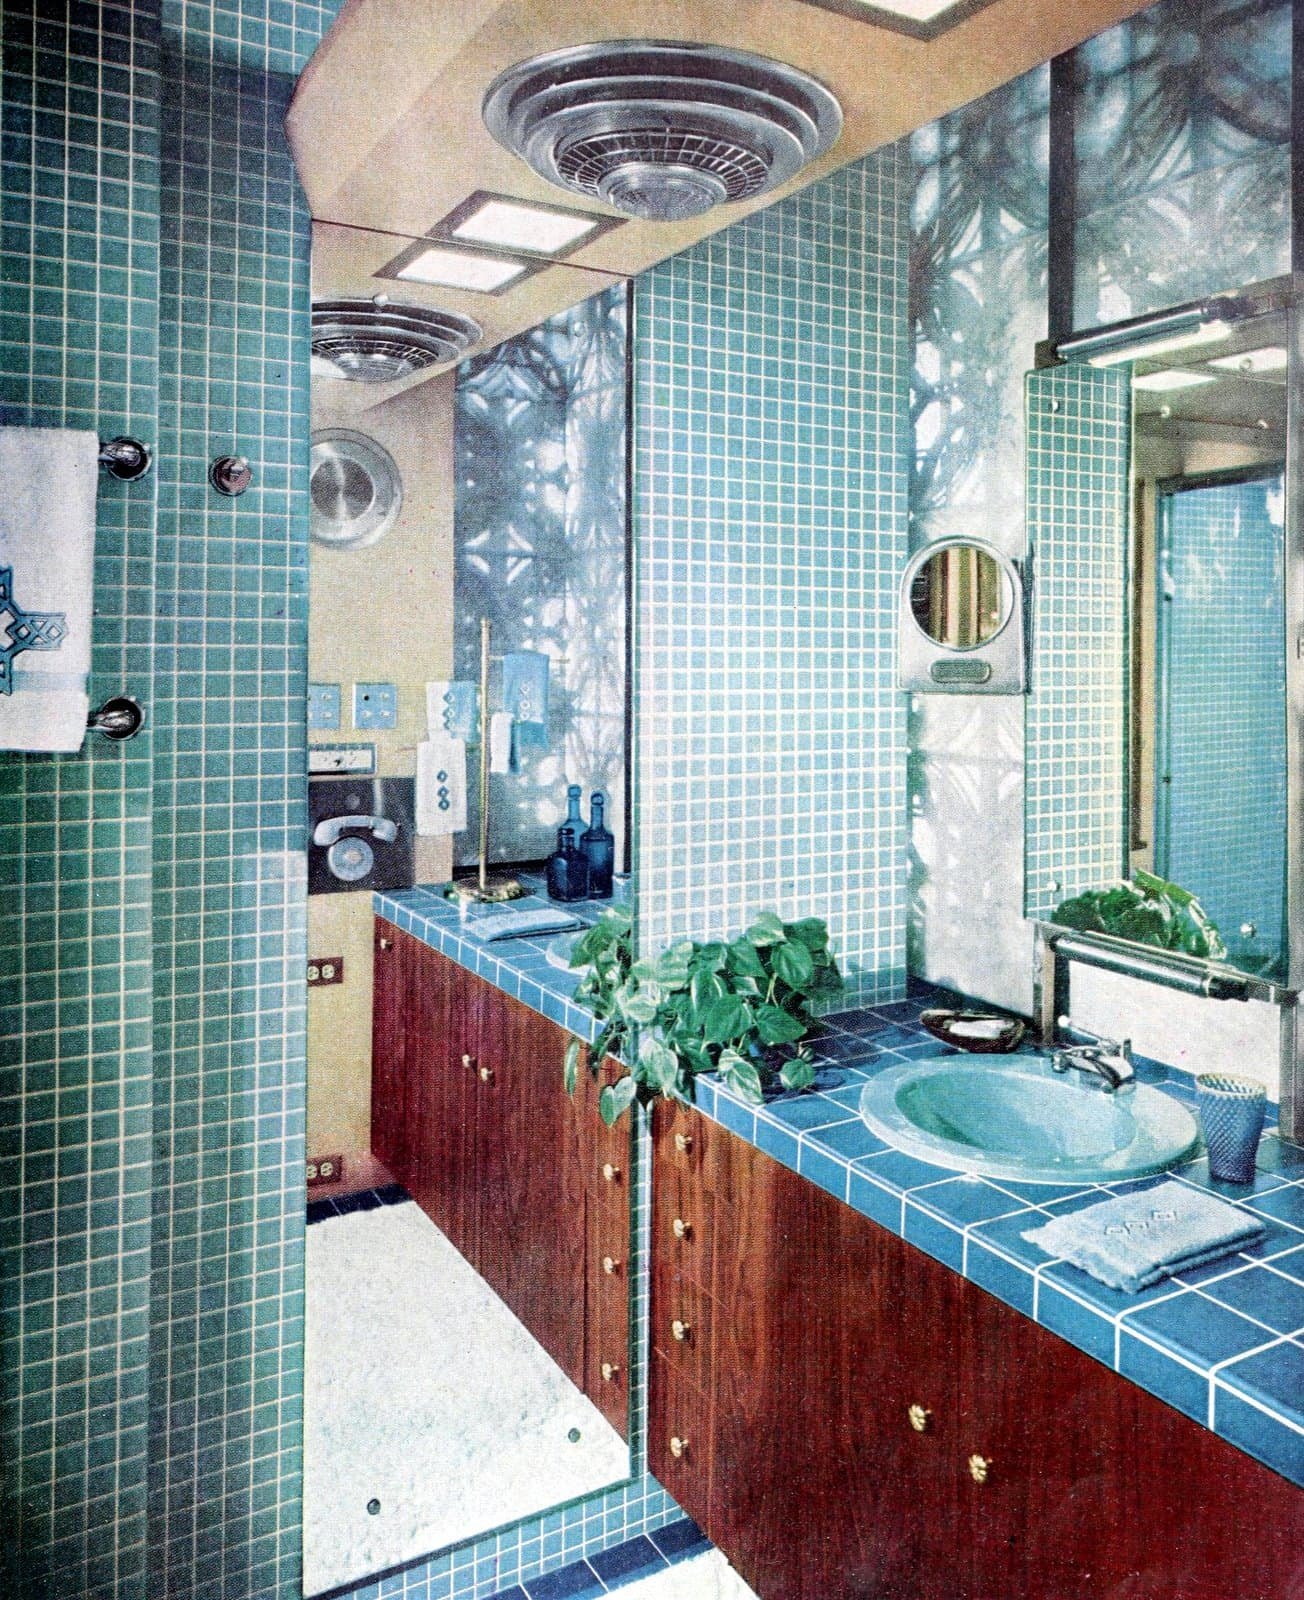 Shades of blue tile in this retro 60s bathroom